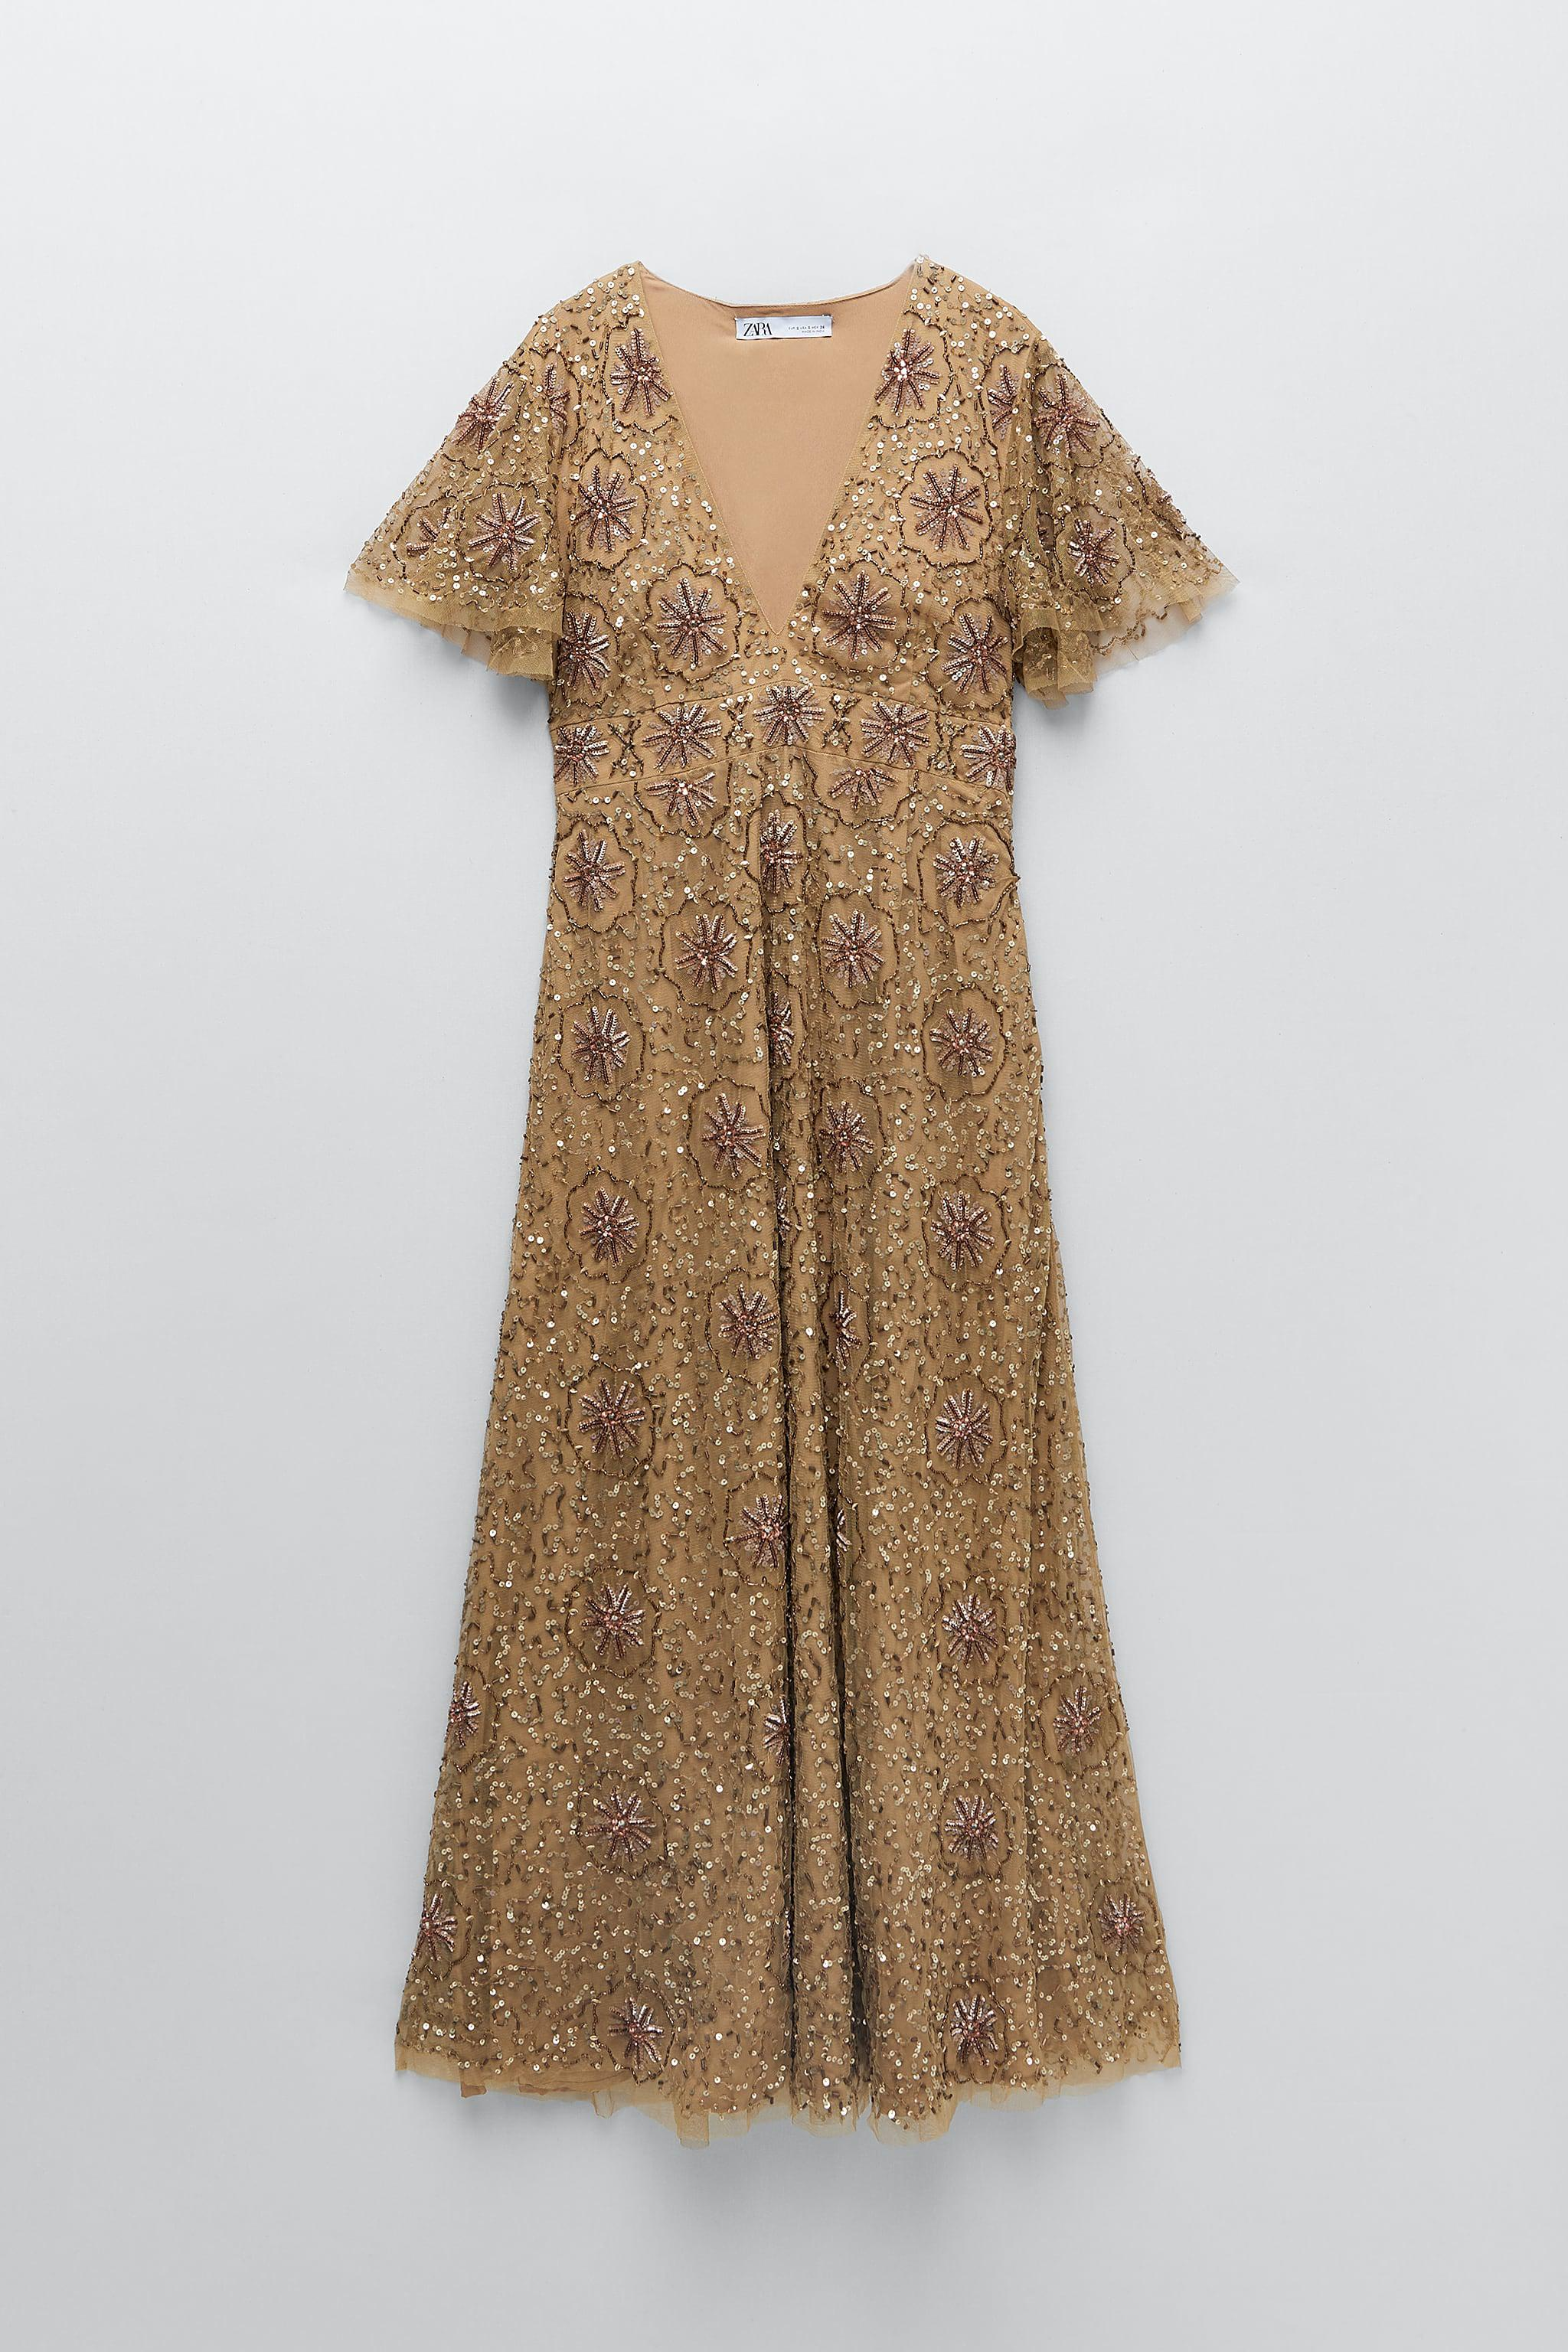 BEADED SPECIAL EDITION KNIT DRESS 6